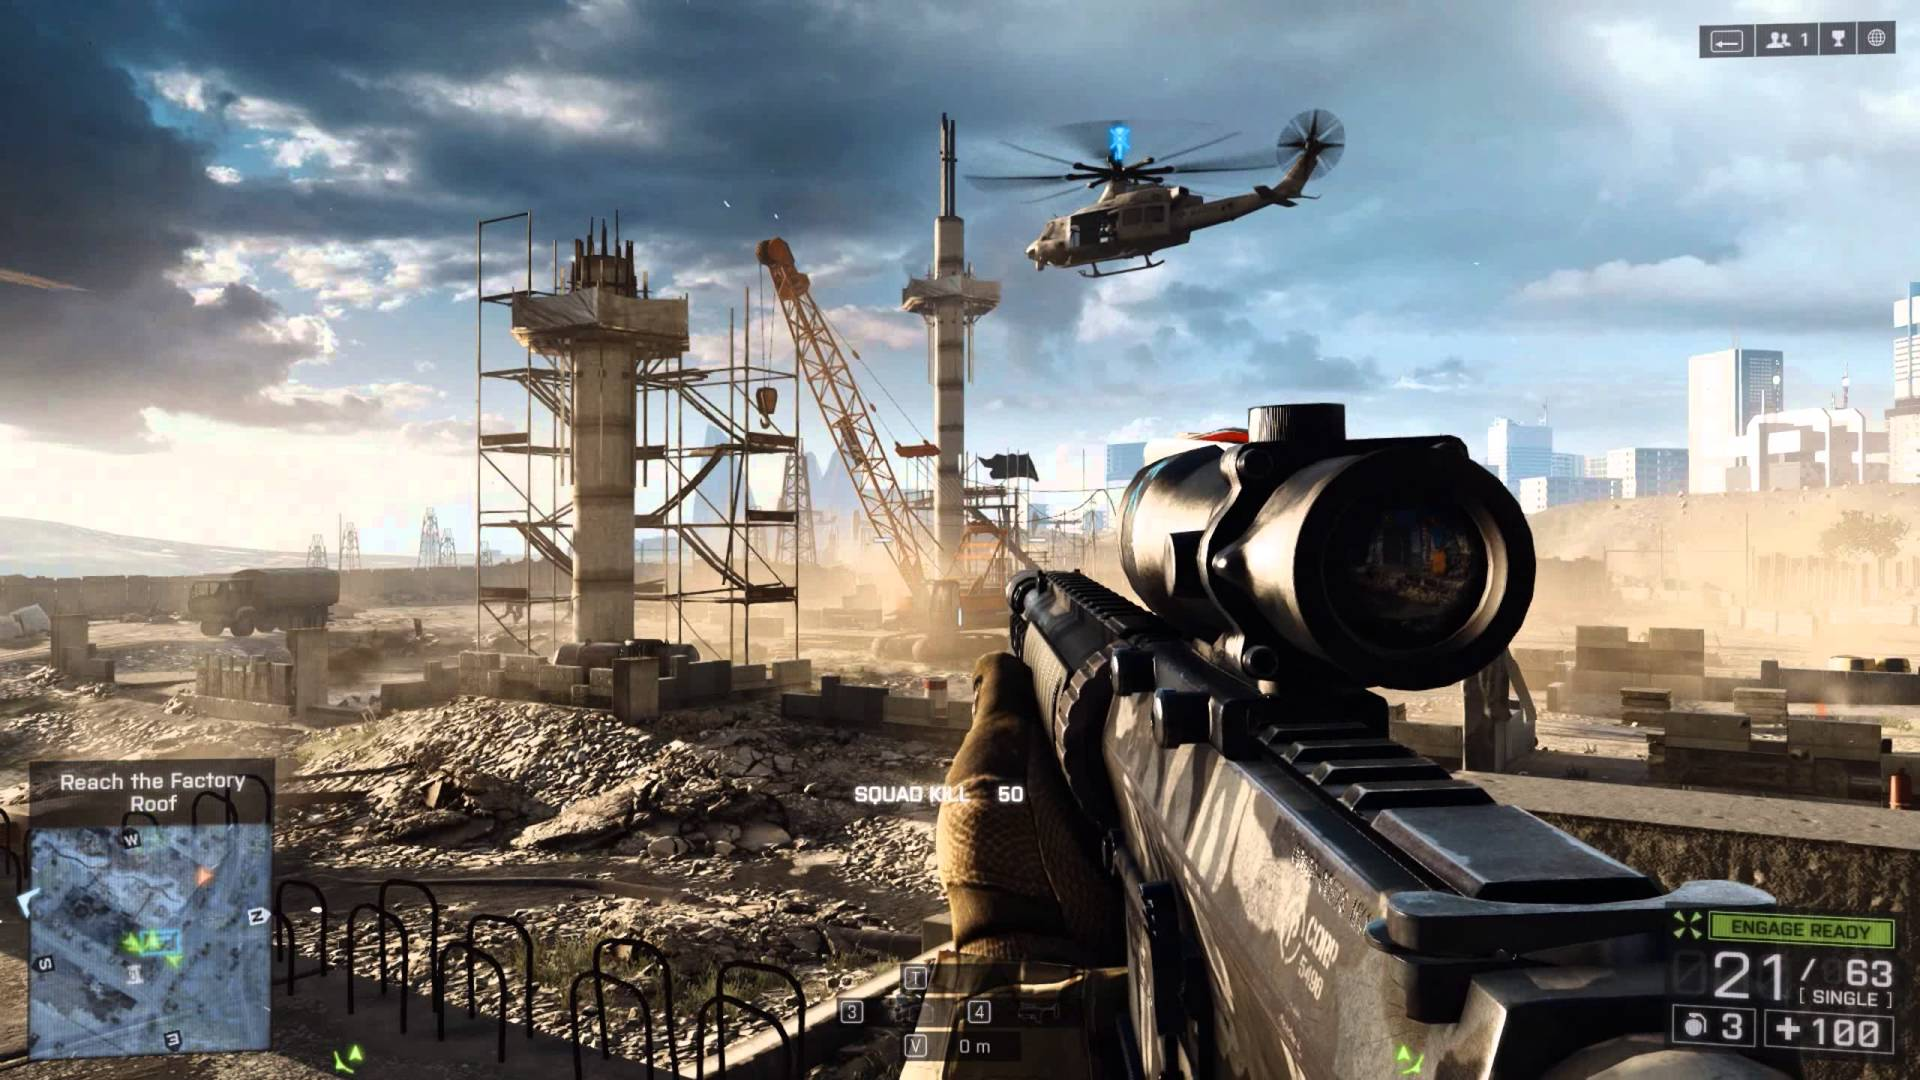 Amazing Battlefield 4 Pictures & Backgrounds